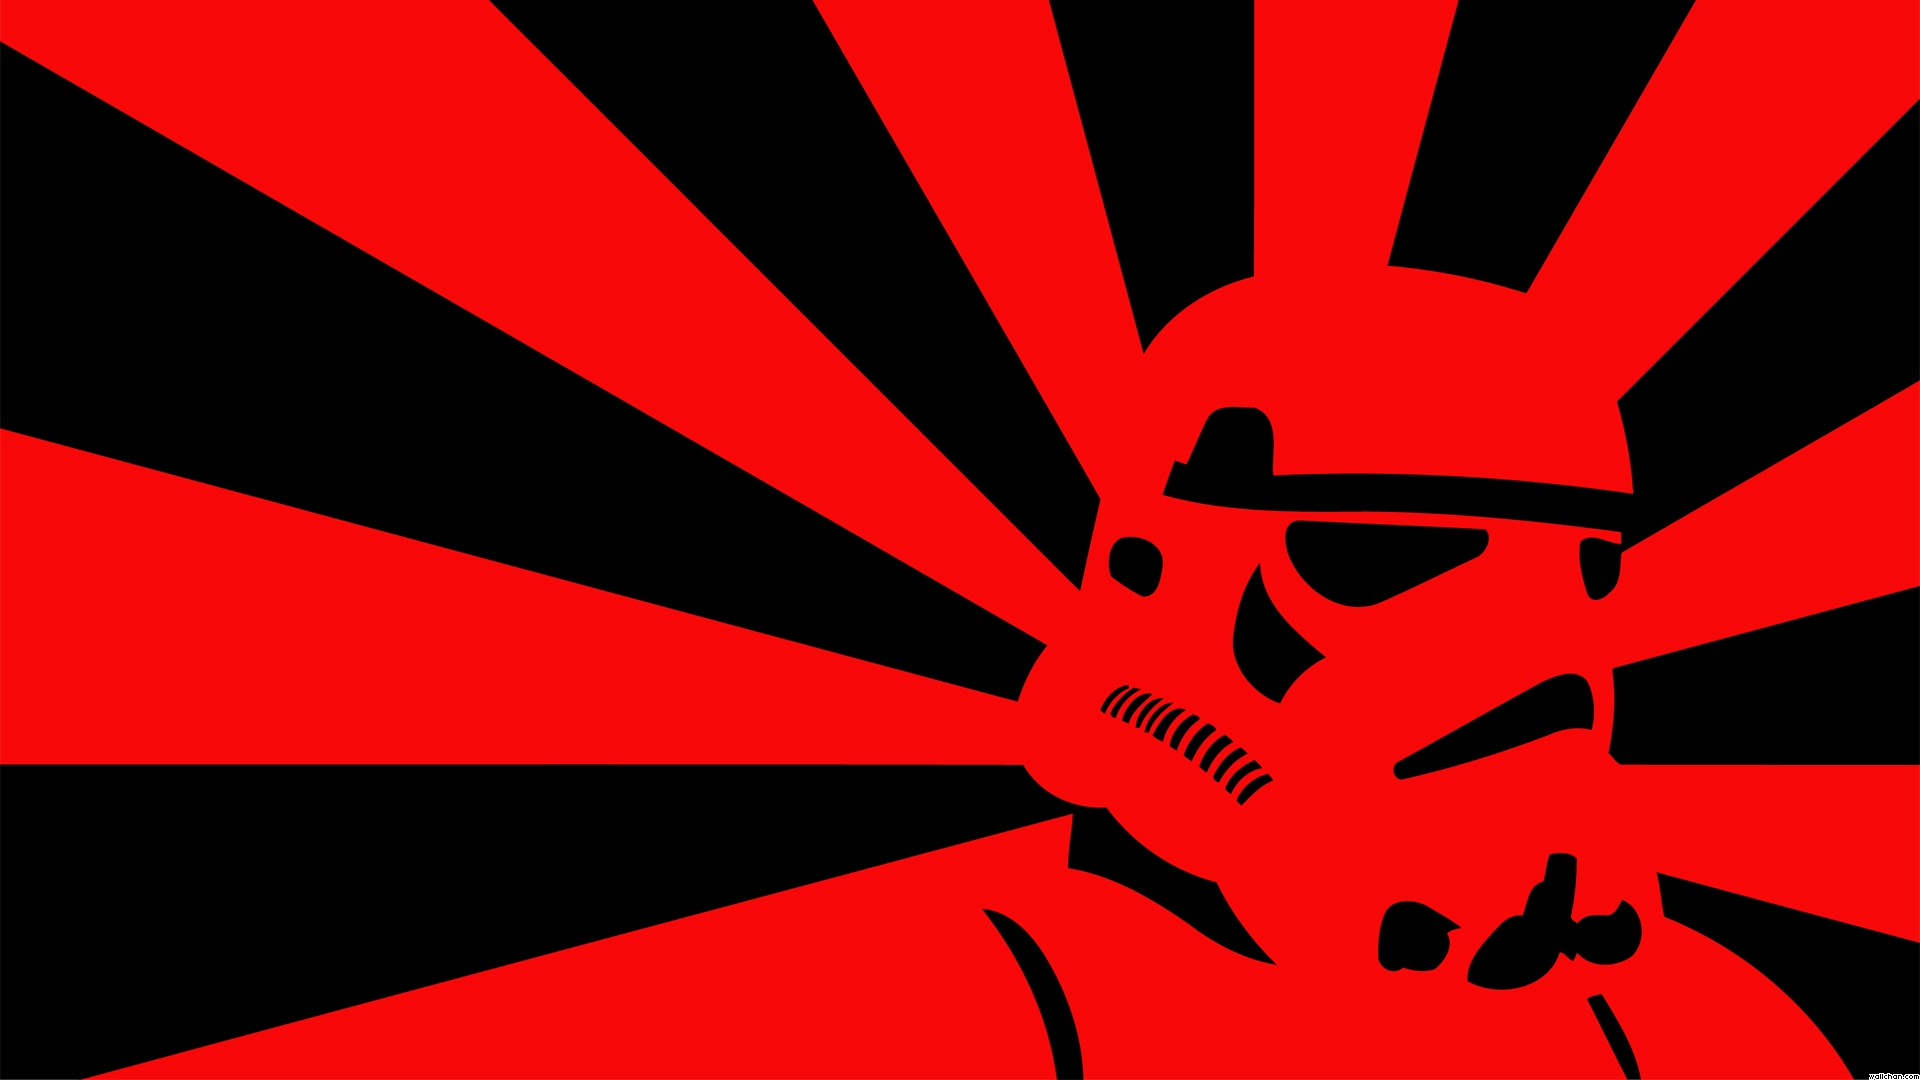 Red Hd Wallpaper Red And Black Stormtrooper 878071 Hd